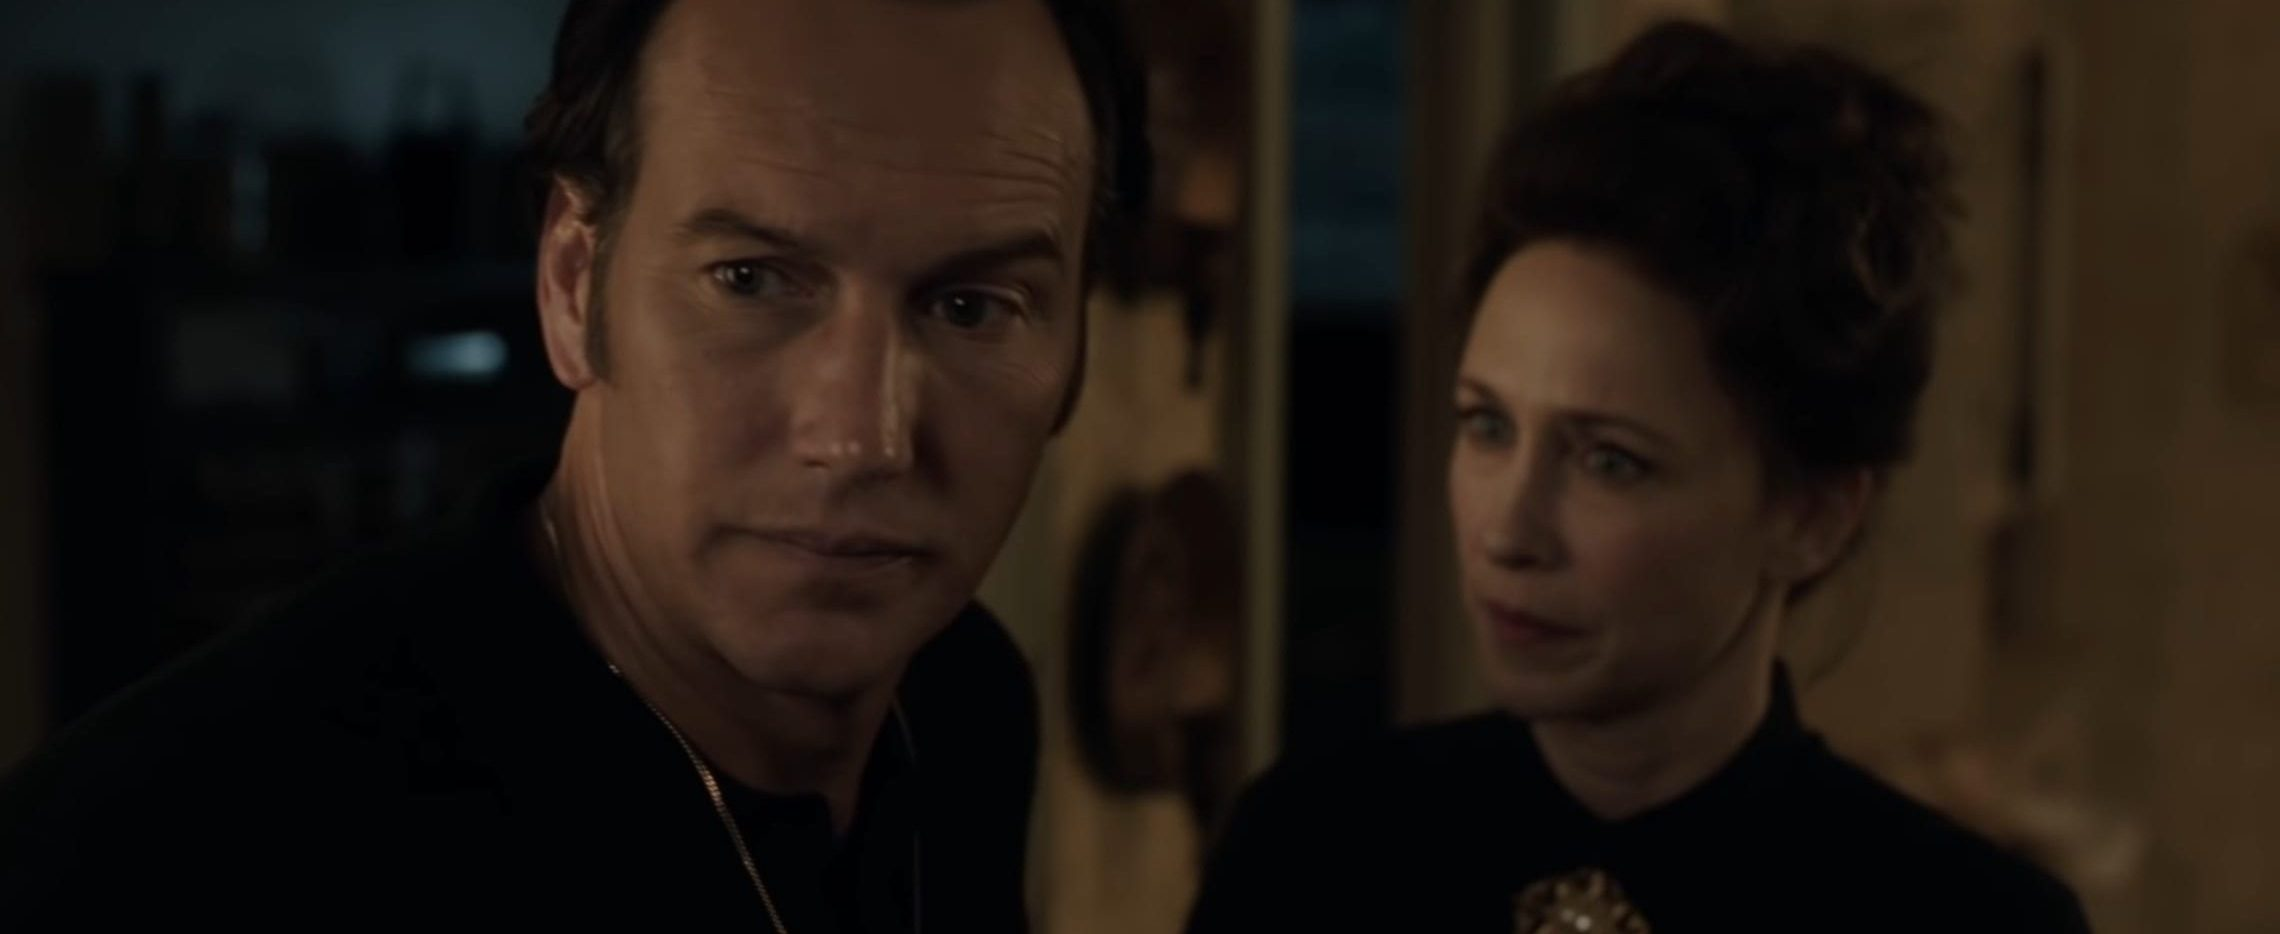 The Story Behind The Conjuring 3 Explained